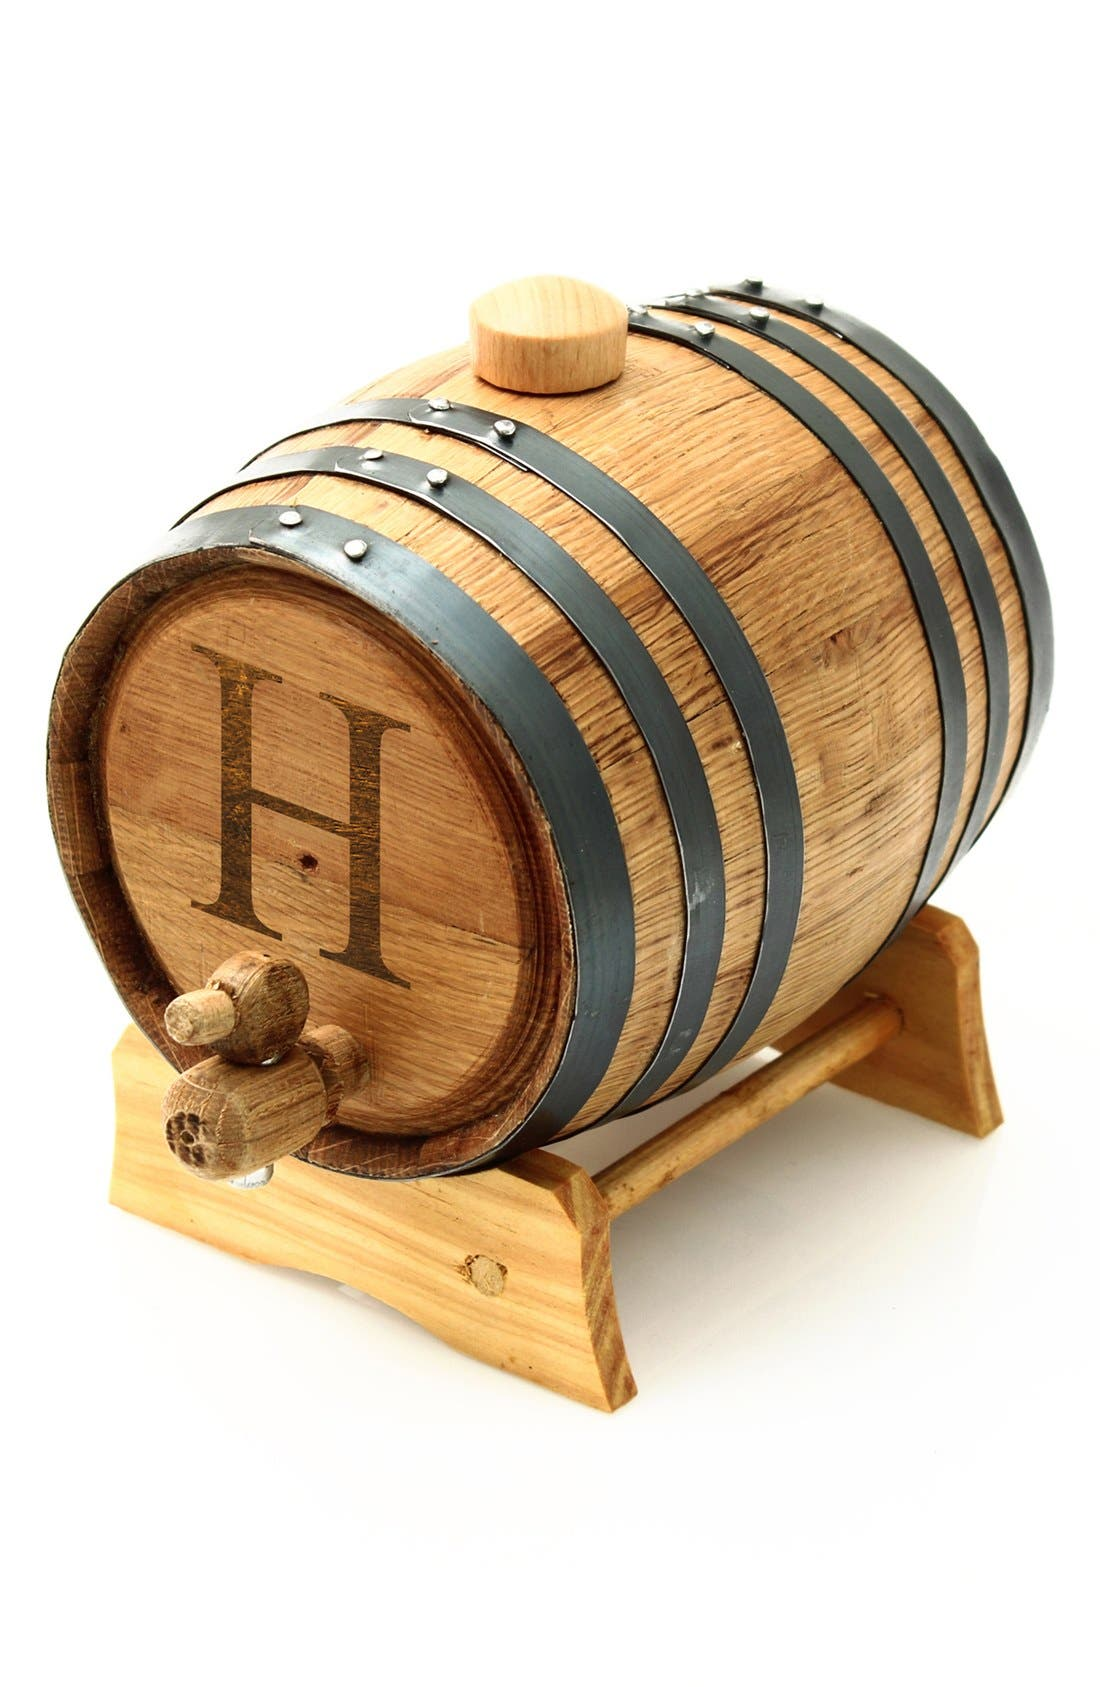 CATHY'S CONCEPTS Monogram Oak Whiskey Barrel, Small